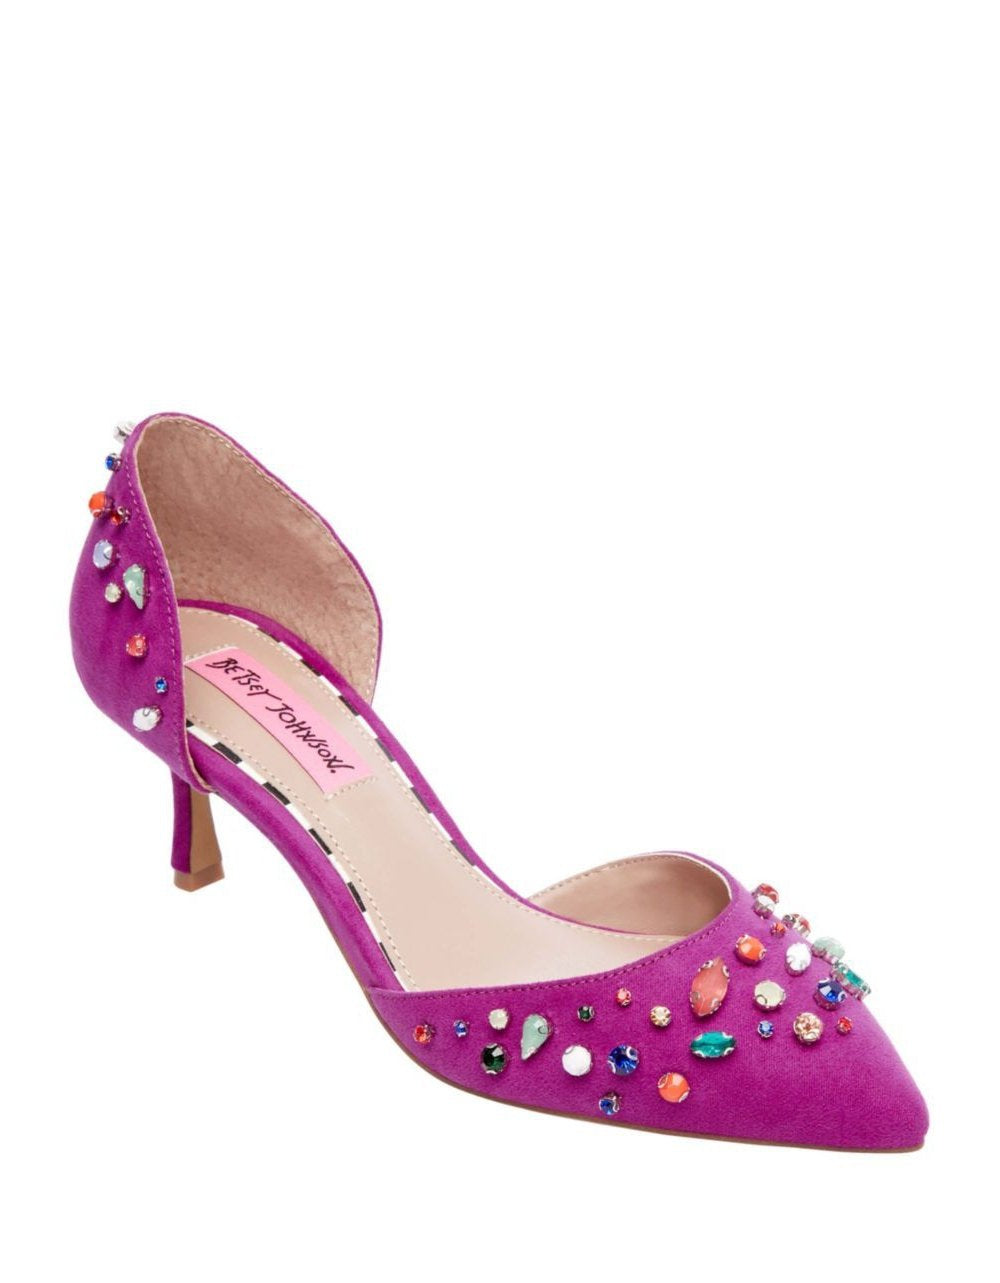 MAX MAGENTA - SHOES - Betsey Johnson